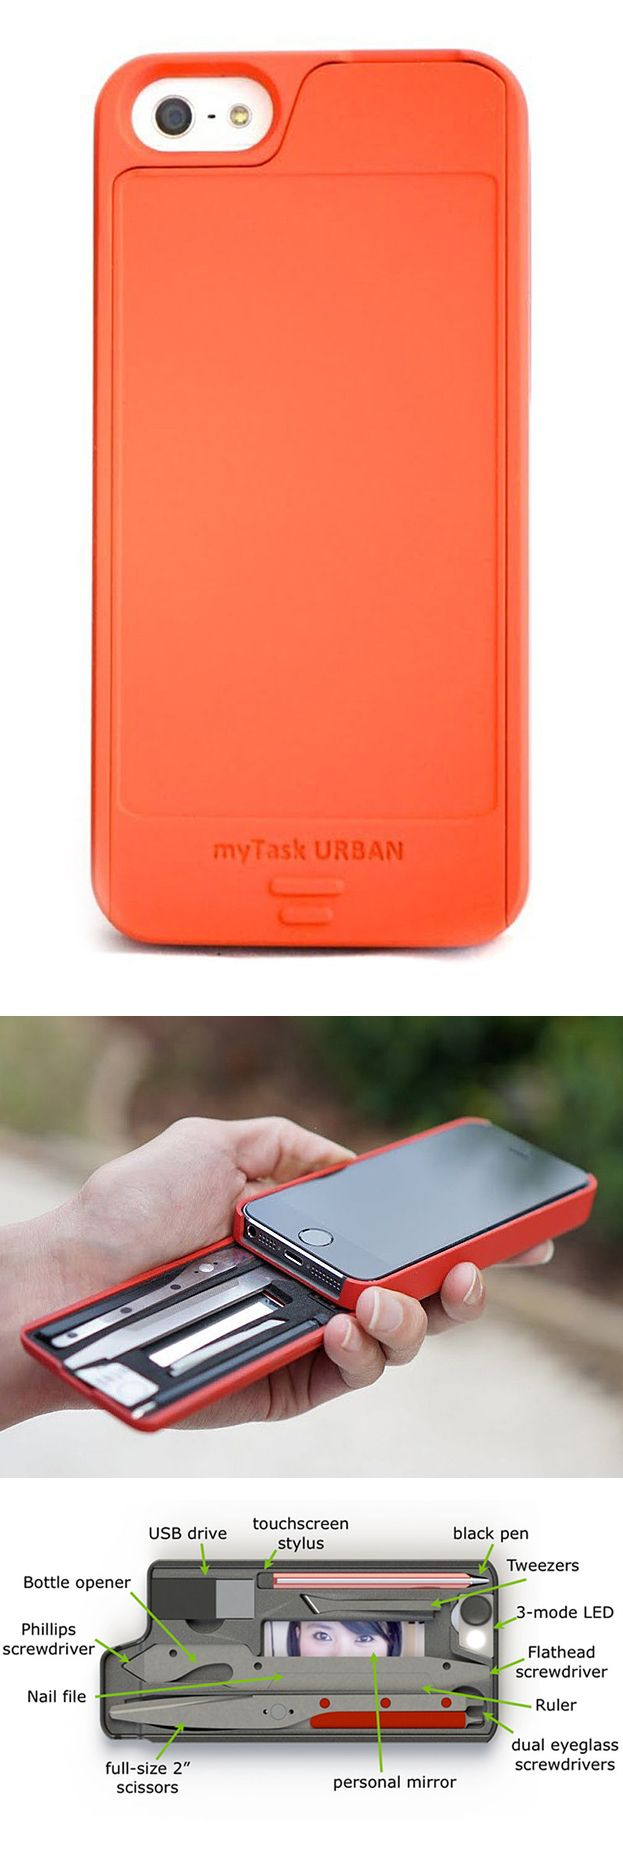 IPhone case with essential everyday tools like a pen, stylus, bottle opener, and screwdriver.